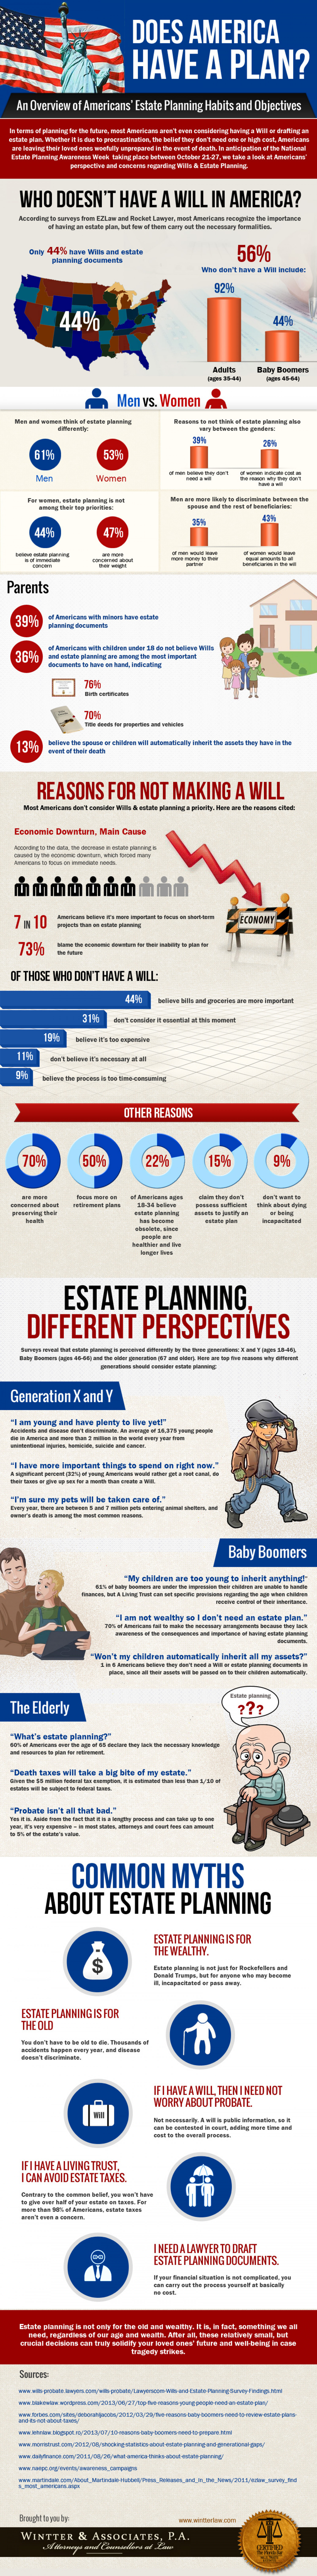 Does America Have a Plan?  Infographic